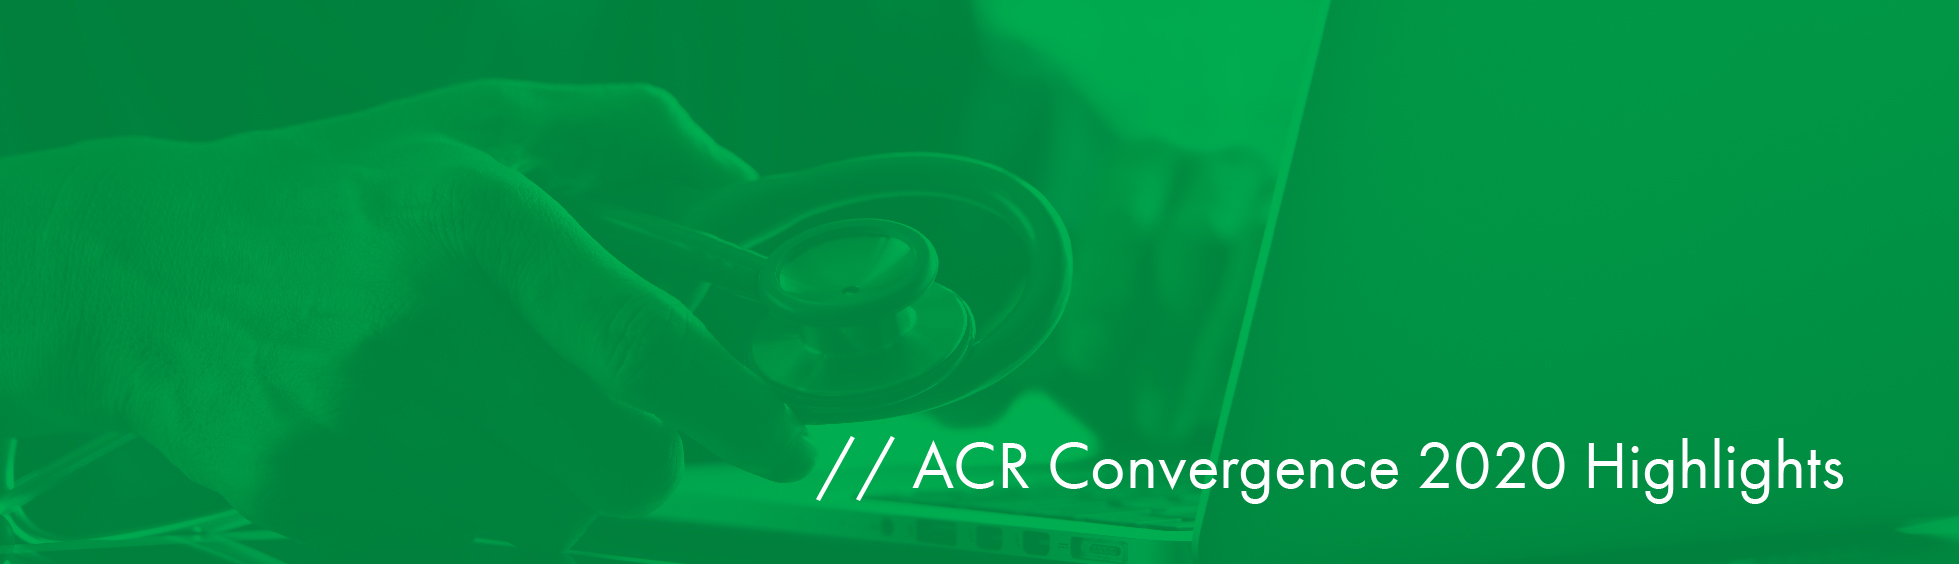 ACR 2020 Highlights: A Unique Perspective as Both a Patient & Provider